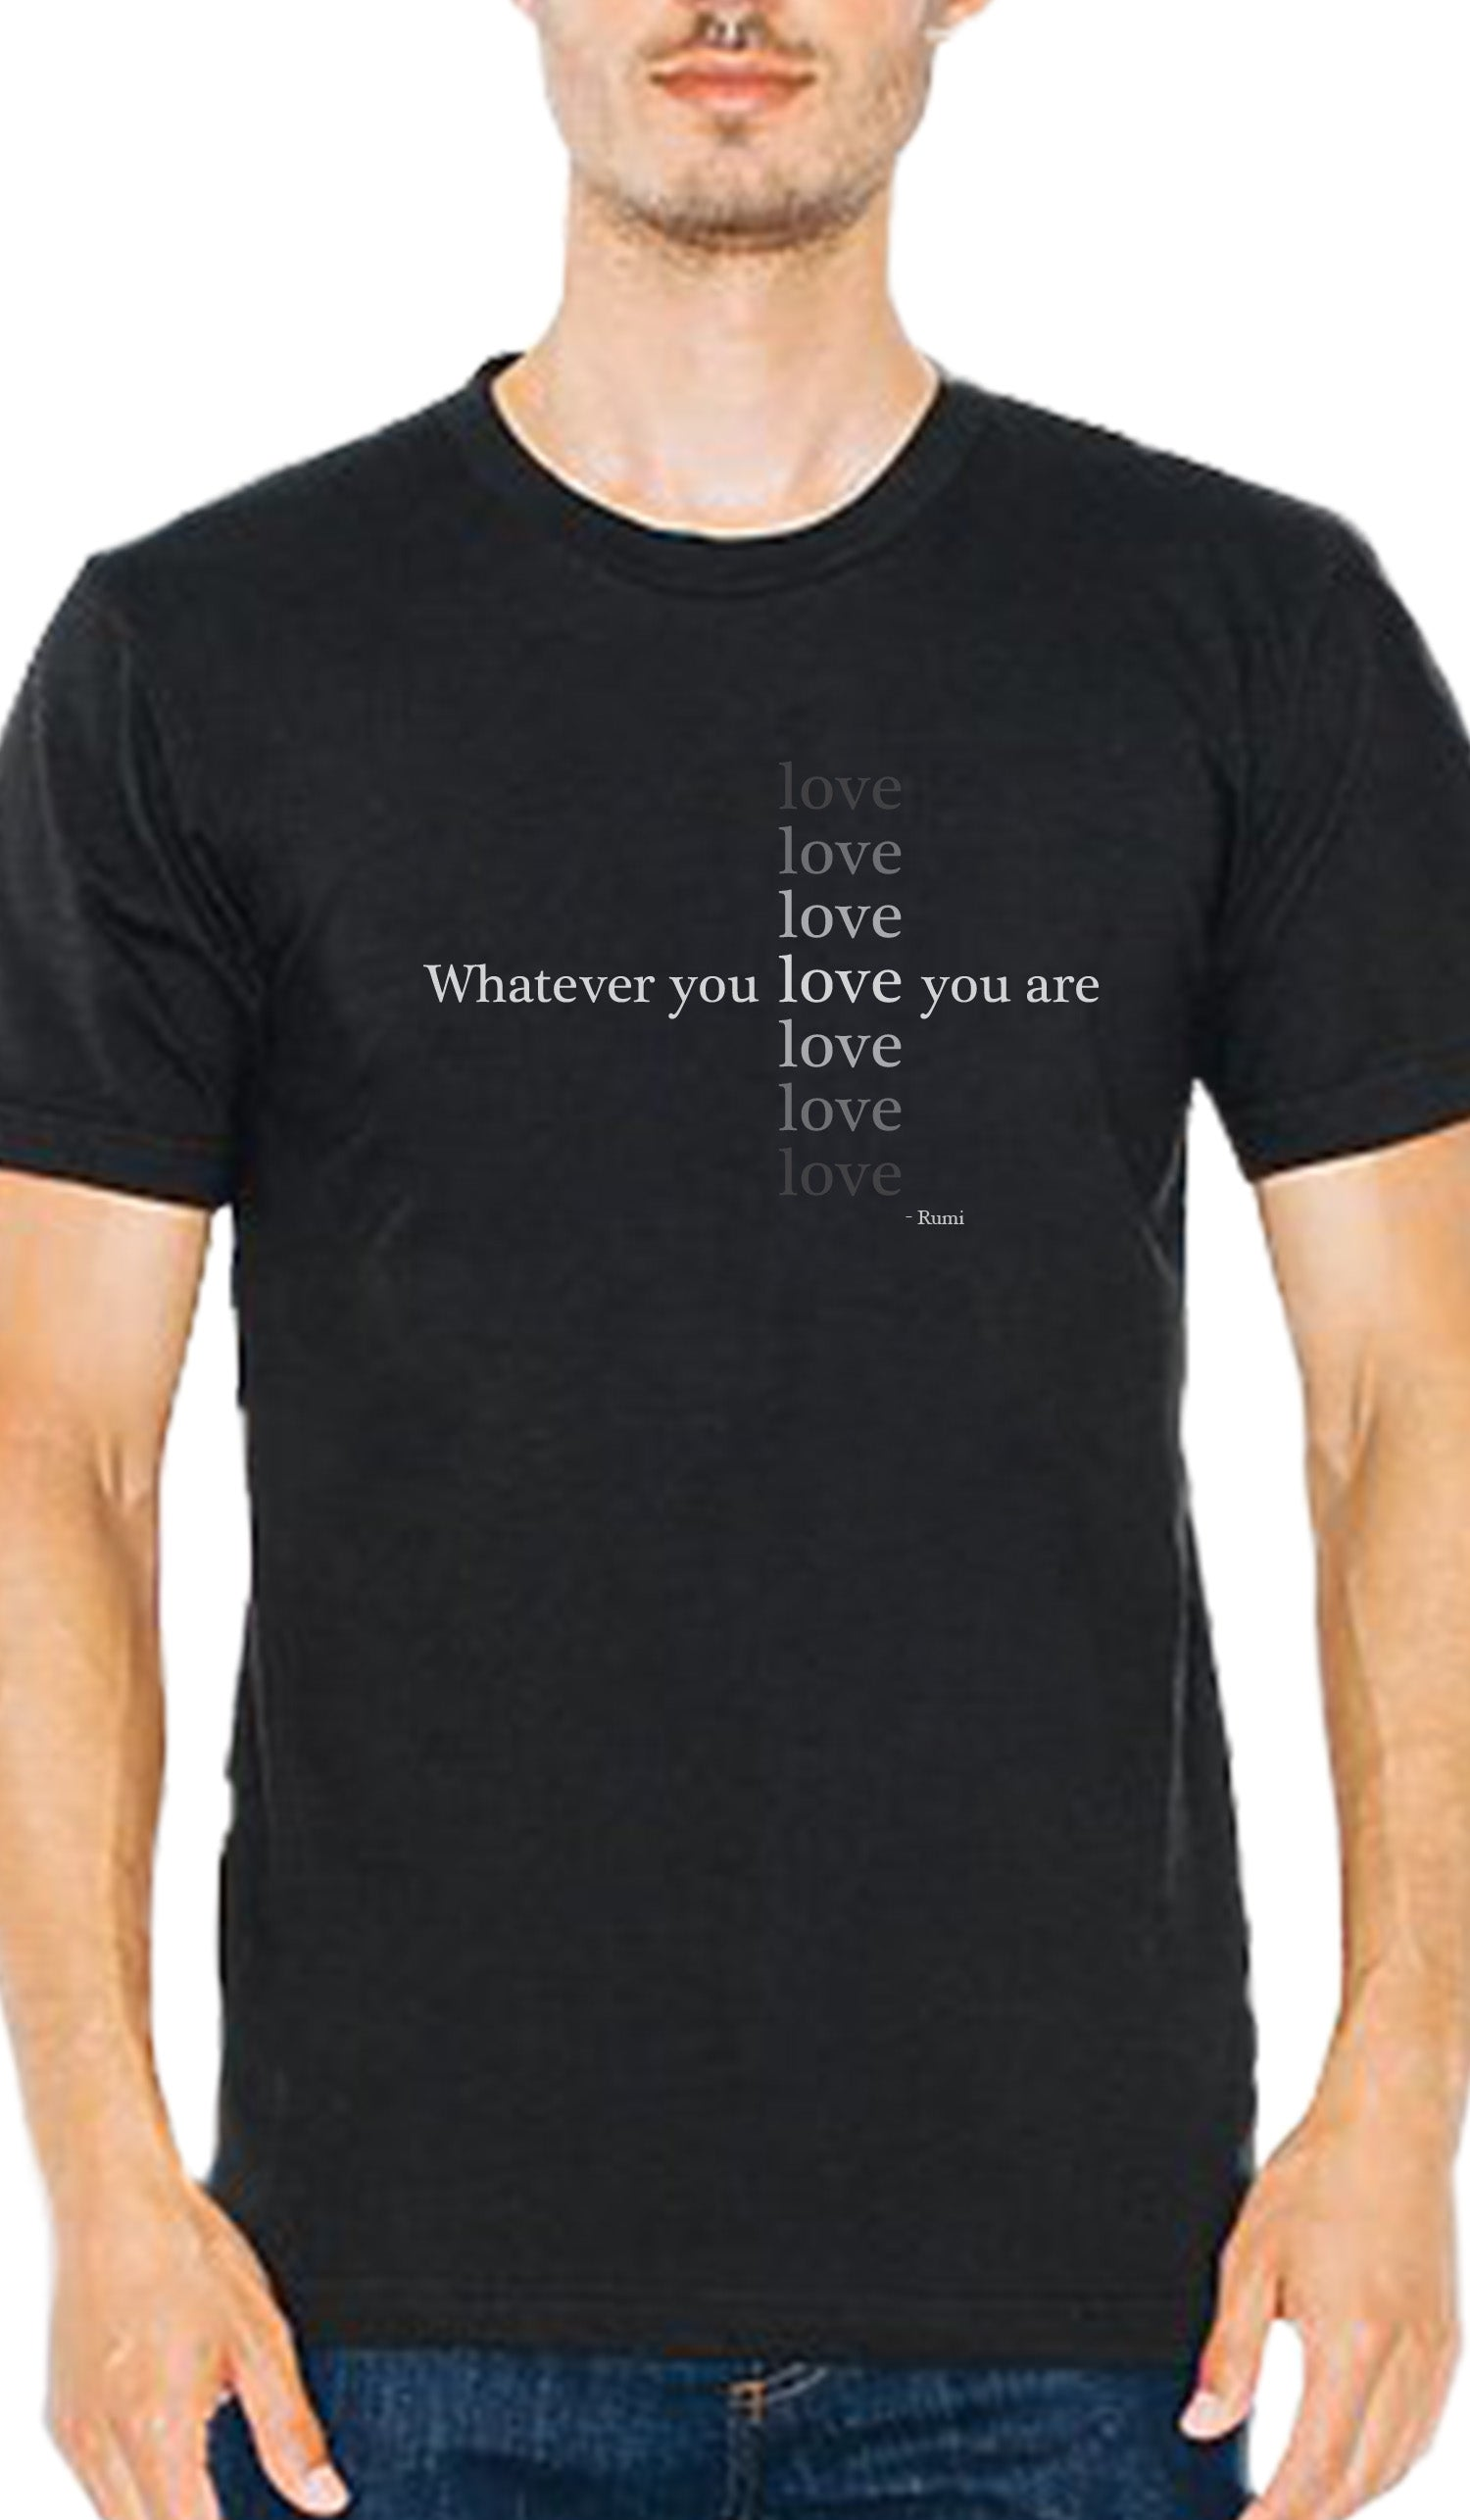 Rumi Quotes Love Short Sleeve Mens T Shirt Black Islamic T Shirt